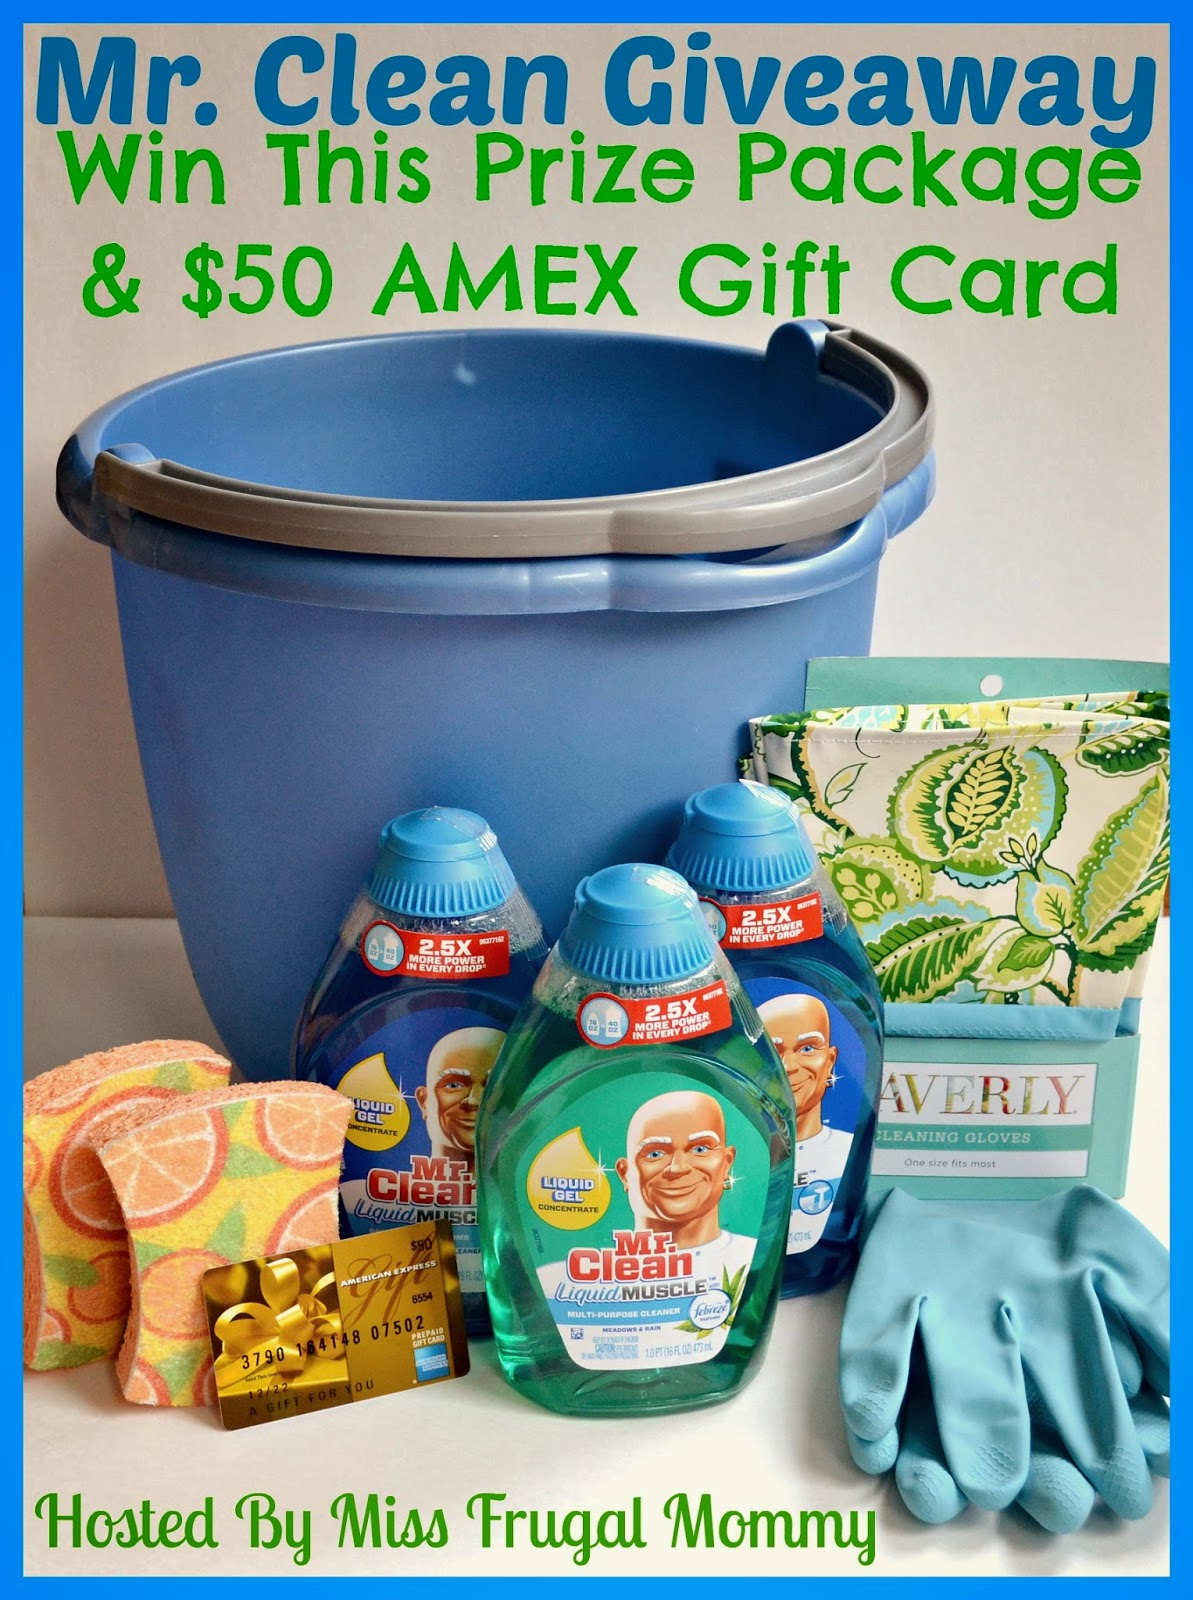 Mr. Clean's Prize Package Giveaway